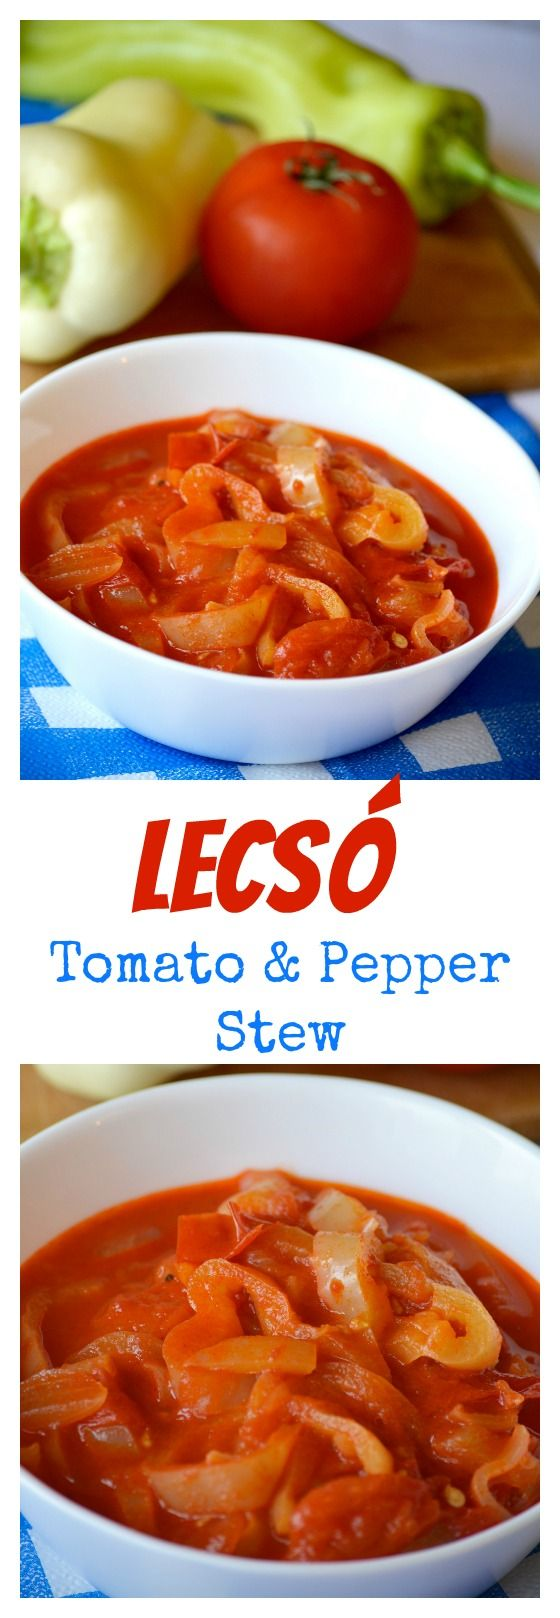 """Hungarian lecsó is a stewed mix of peppers, tomatoes and onions. It is sometimes called """"Hungarian ratatouille"""". Lecsó comes in many variations and it can be served on its own, as a side or as a main dish, at any time of the day. A nice vegetarian dish, but meat lovers prefer cooking it with smoked paprika sausage. Click for the recipe."""